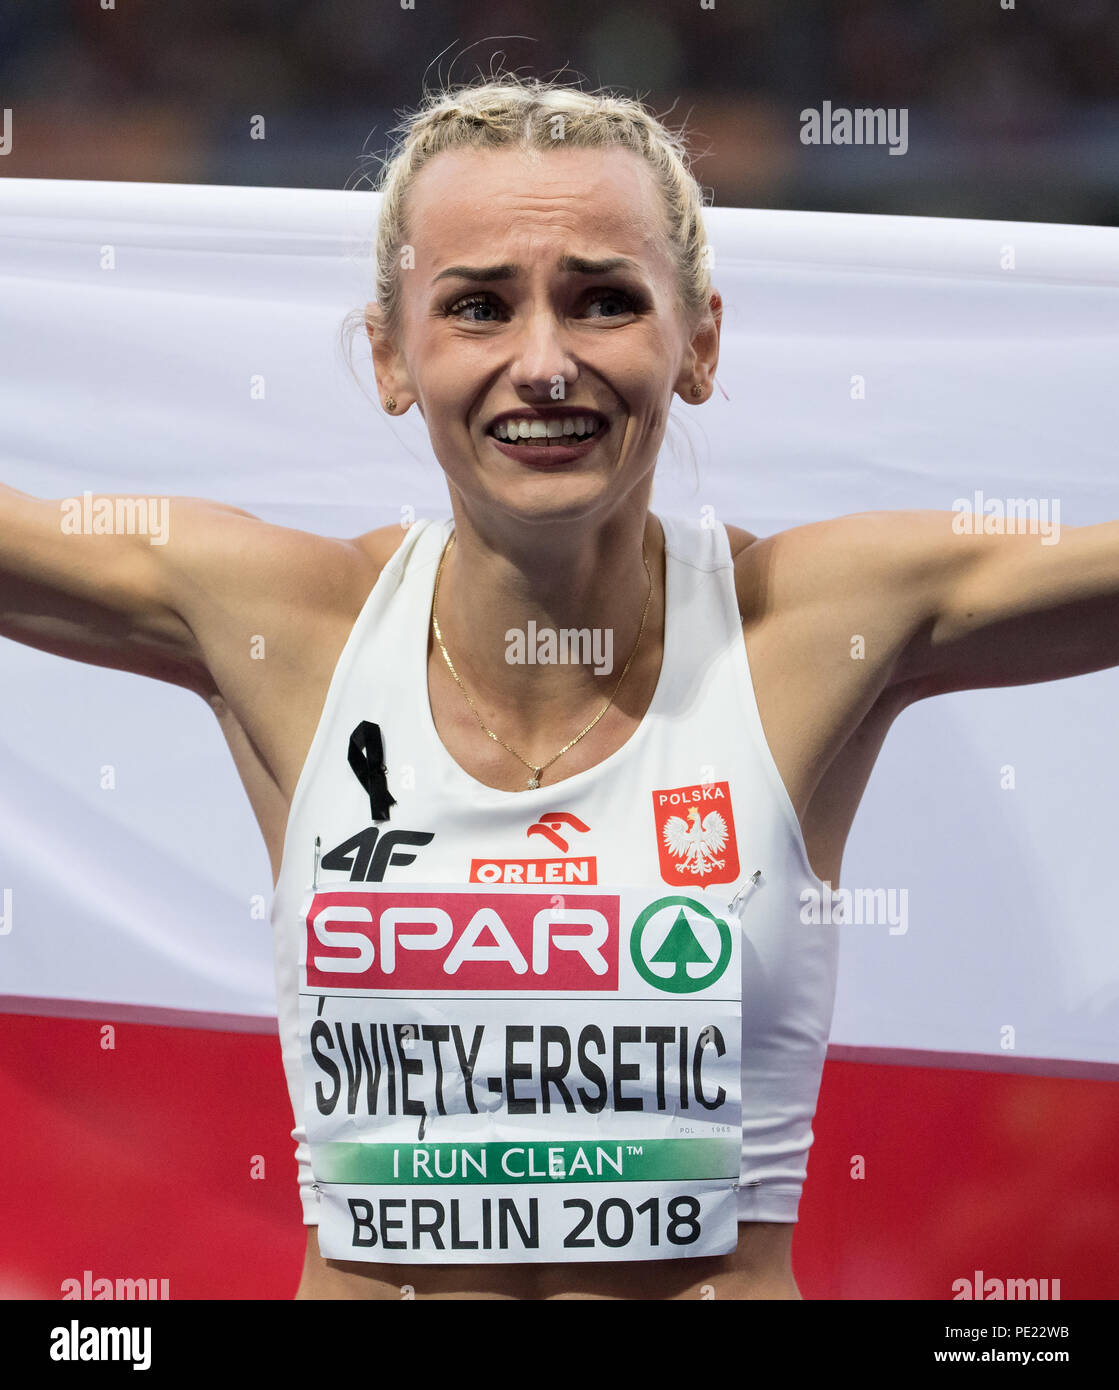 Berlin, Germany. 11th Aug, 2018. European Athletics Championships in the Olympic Stadium: 400 m final, women: Gold medal winner Justyna Swiety-Ersetic from Poland celebrates at the finish line. Credit: Sven Hoppe/dpa/Alamy Live News - Stock Image